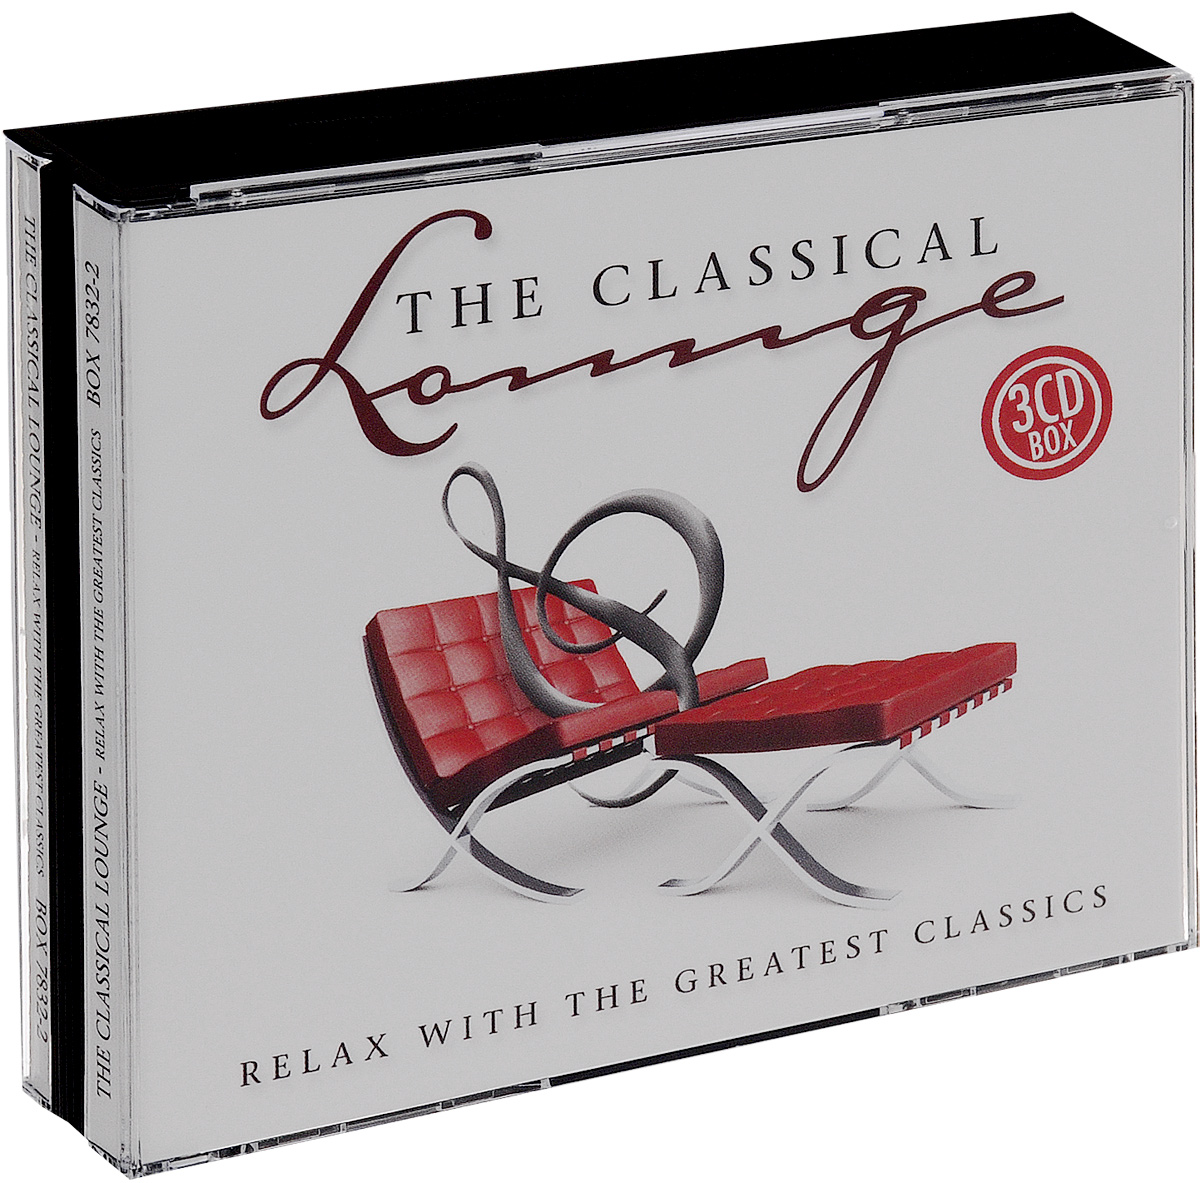 The Classical Lounge. Relax With Greatest Classics (3 CD) зеркало карлоса сантоса 2018 08 20t21 15